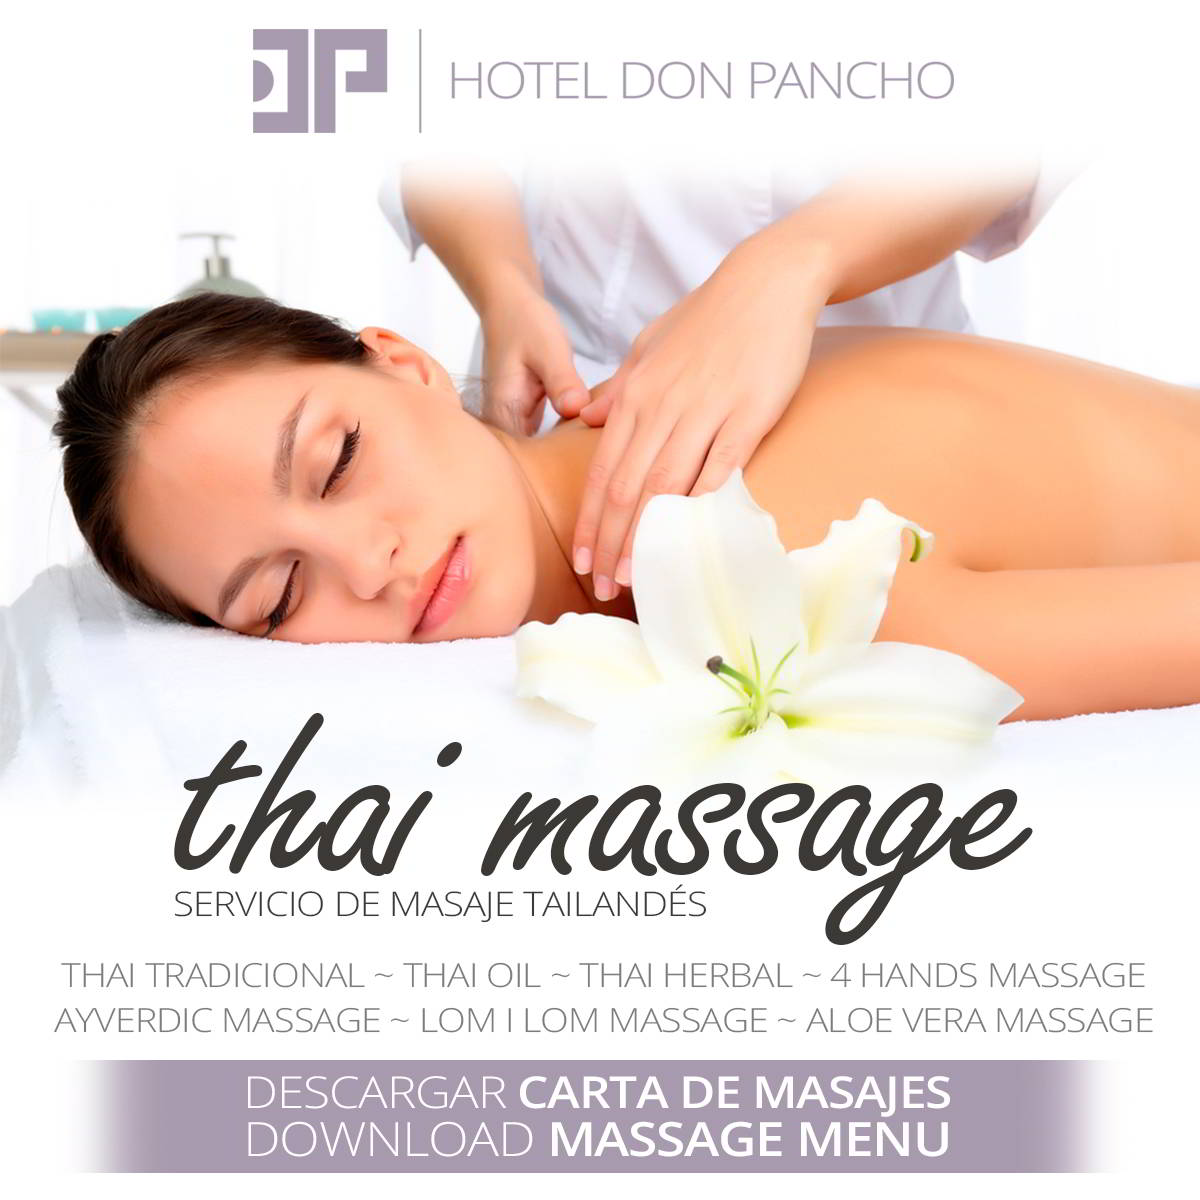 Have a relaxing massage at Don Pancho